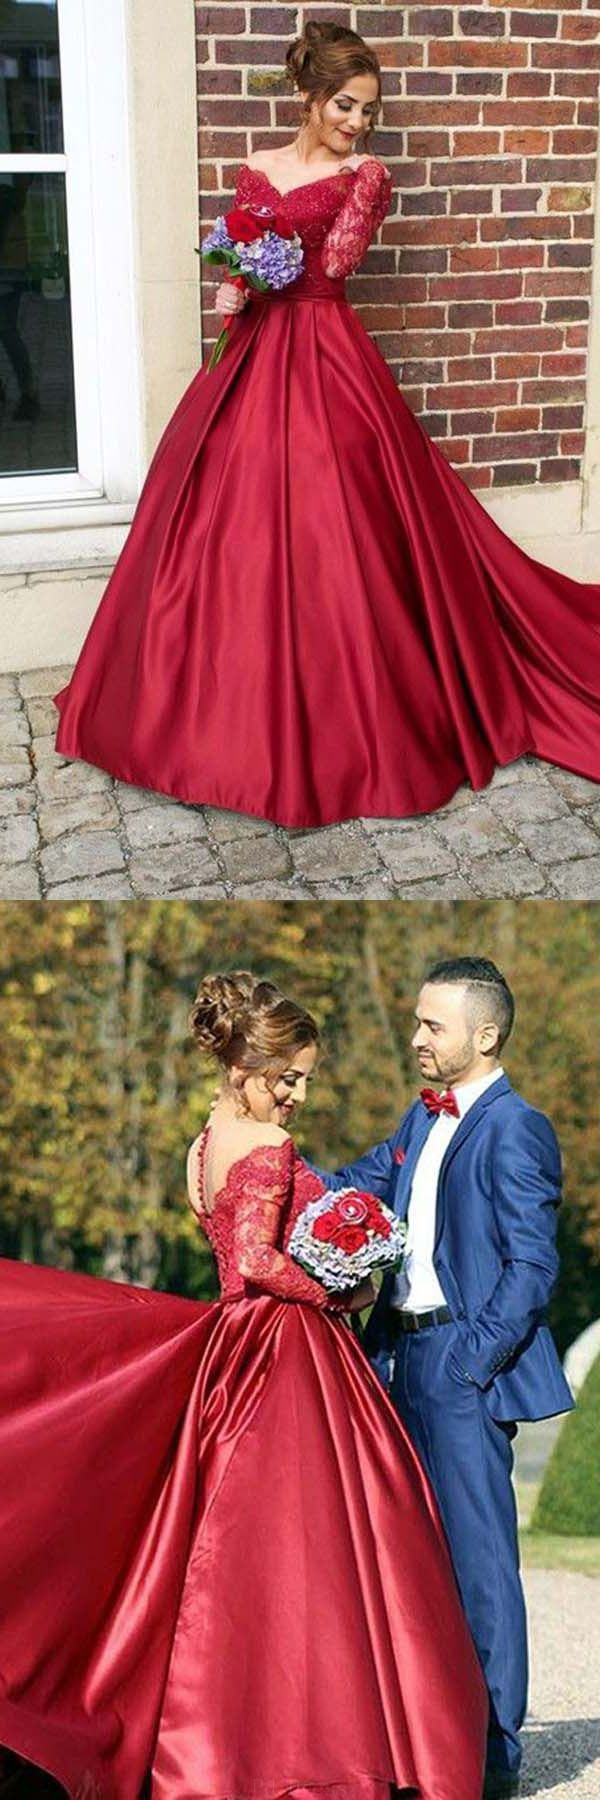 Long sleeves prom dresses burgundy prom dresses prom dresses